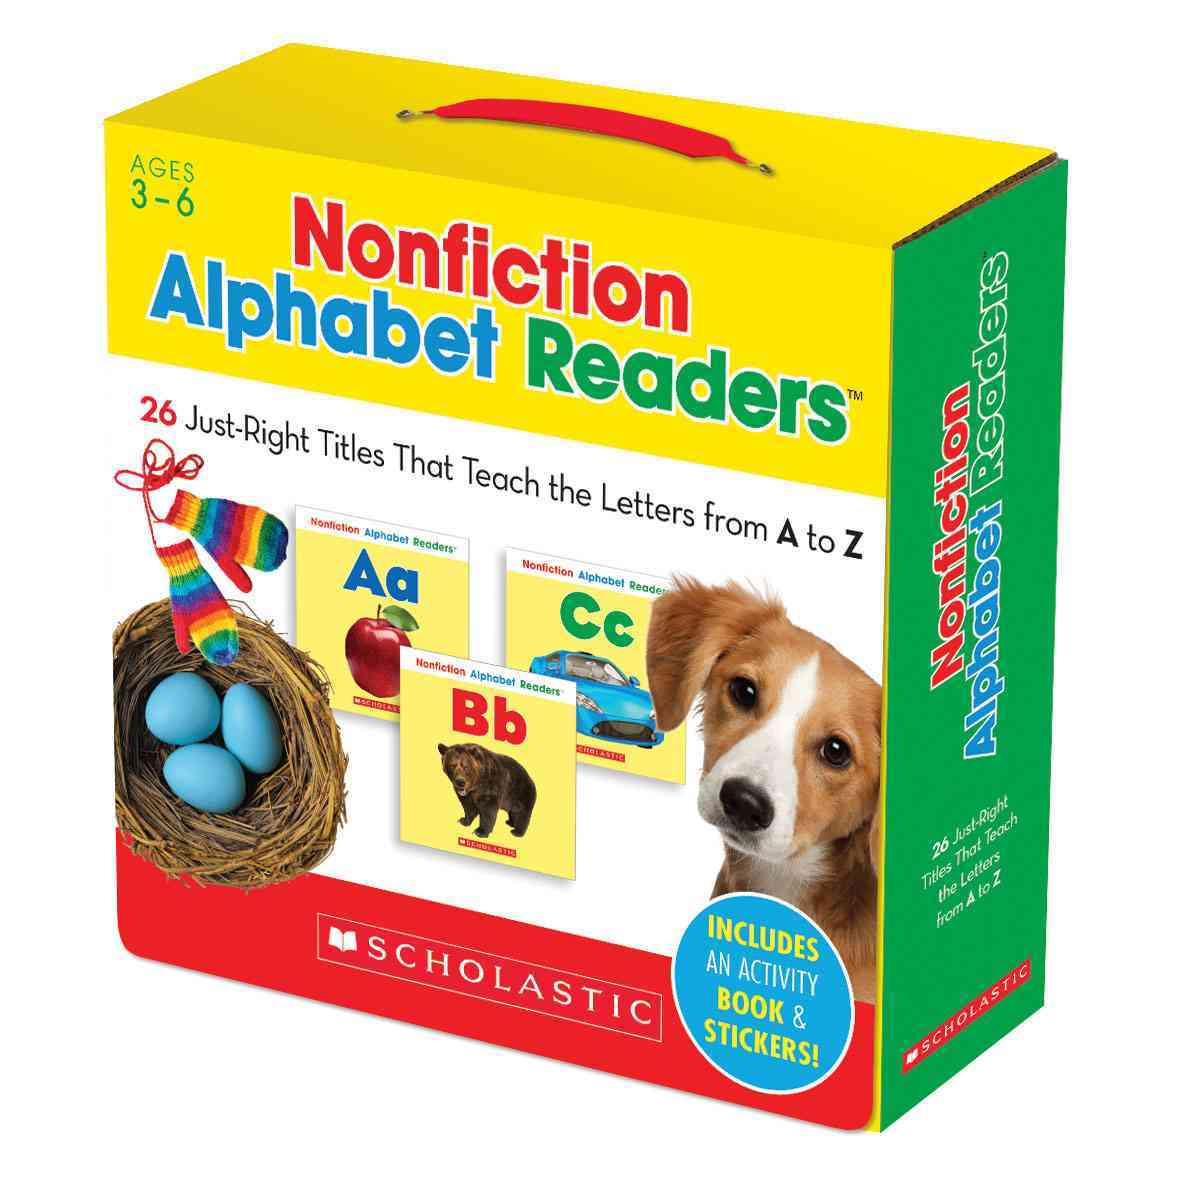 Nonfiction Alphabet Readers Parent Pack By Charlesworth, Liza